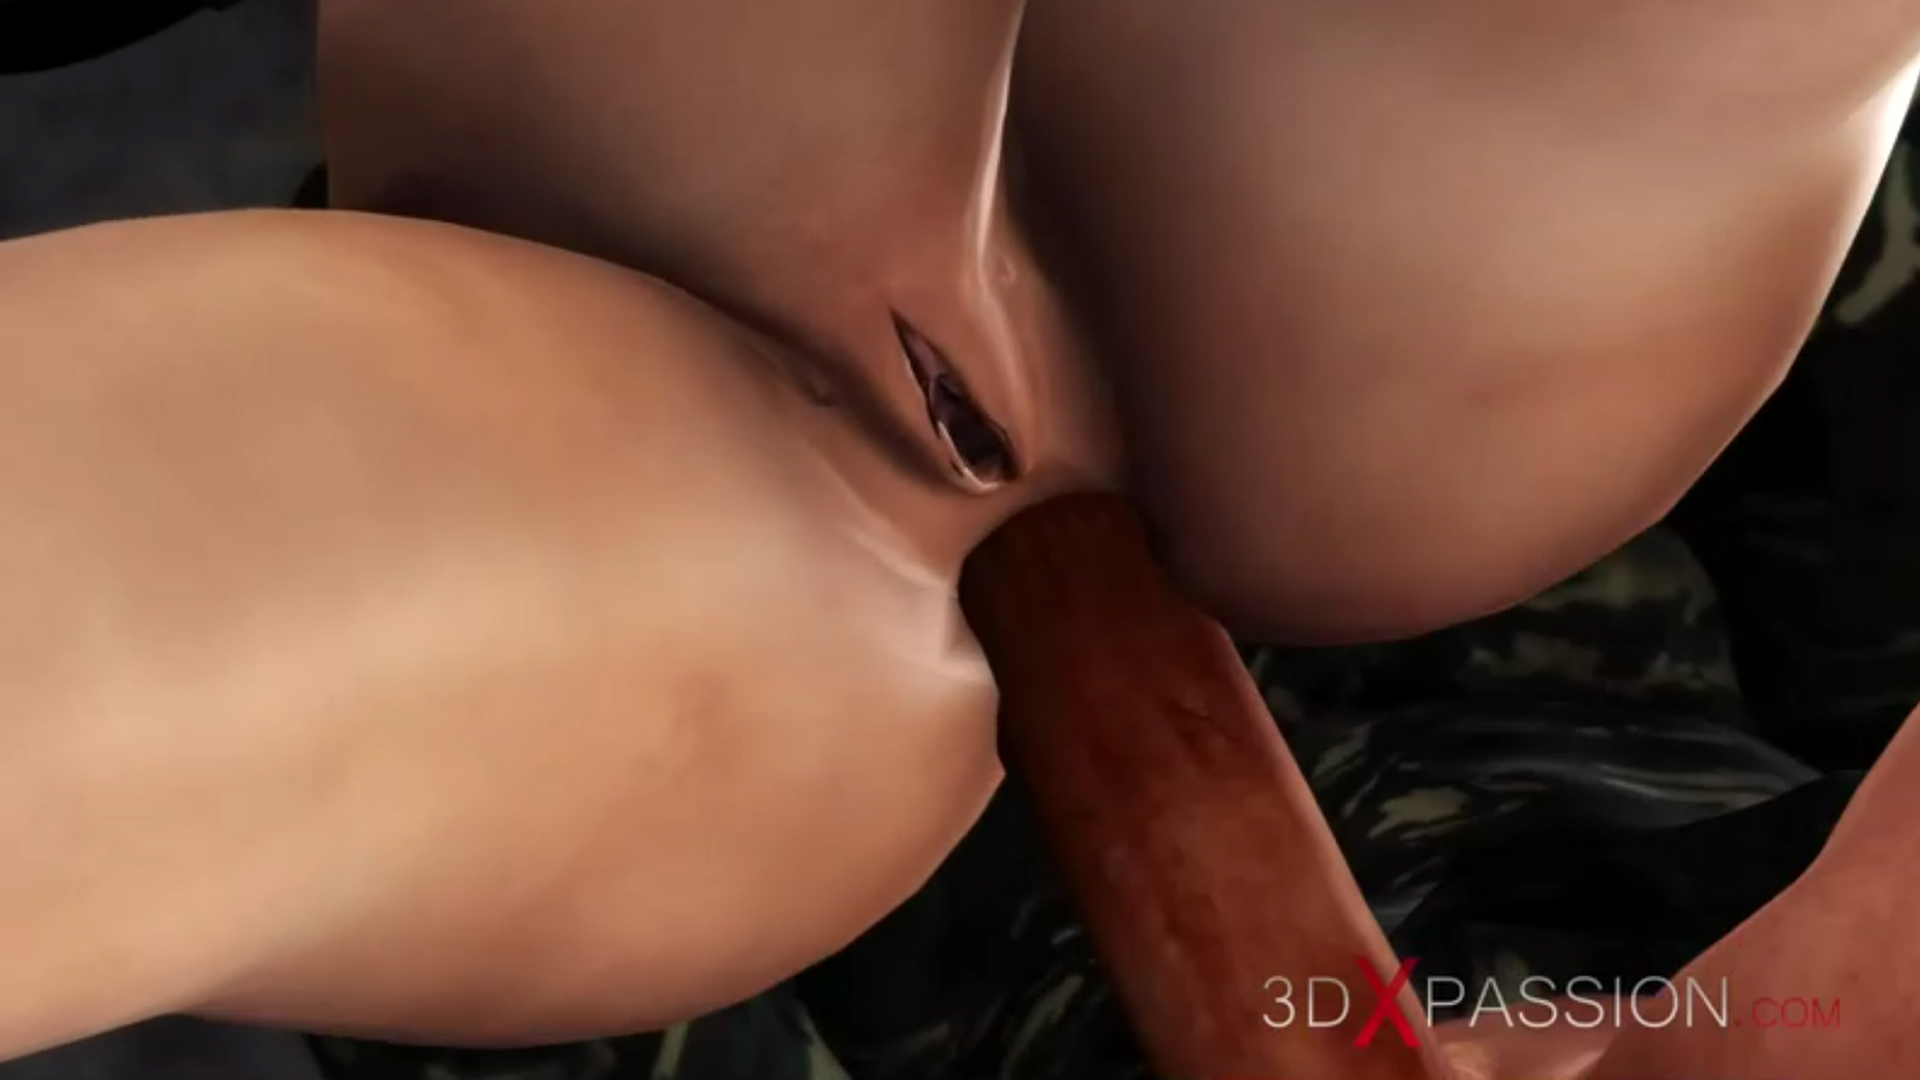 First time hard ass fuck for horny japanese college girl slave military base camp